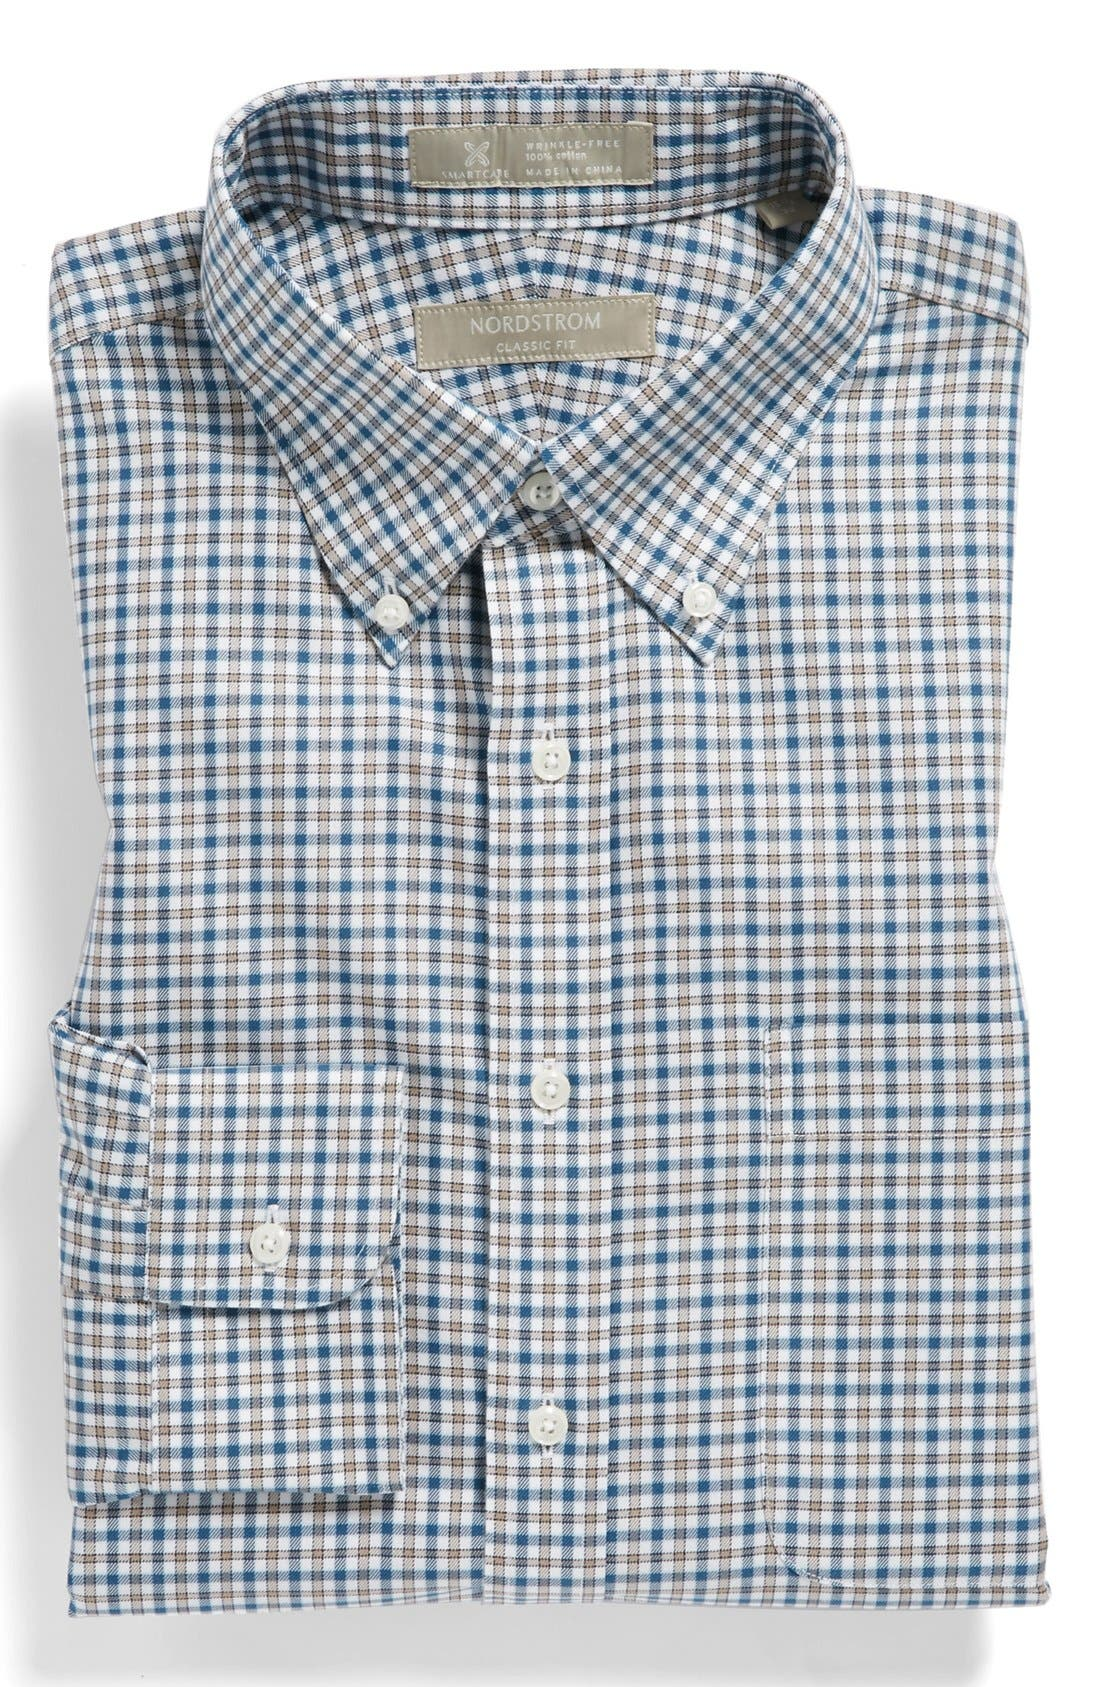 Alternate Image 1 Selected - Nordstrom Smartcare™ Wrinkle Free Classic Fit Dress Shirt